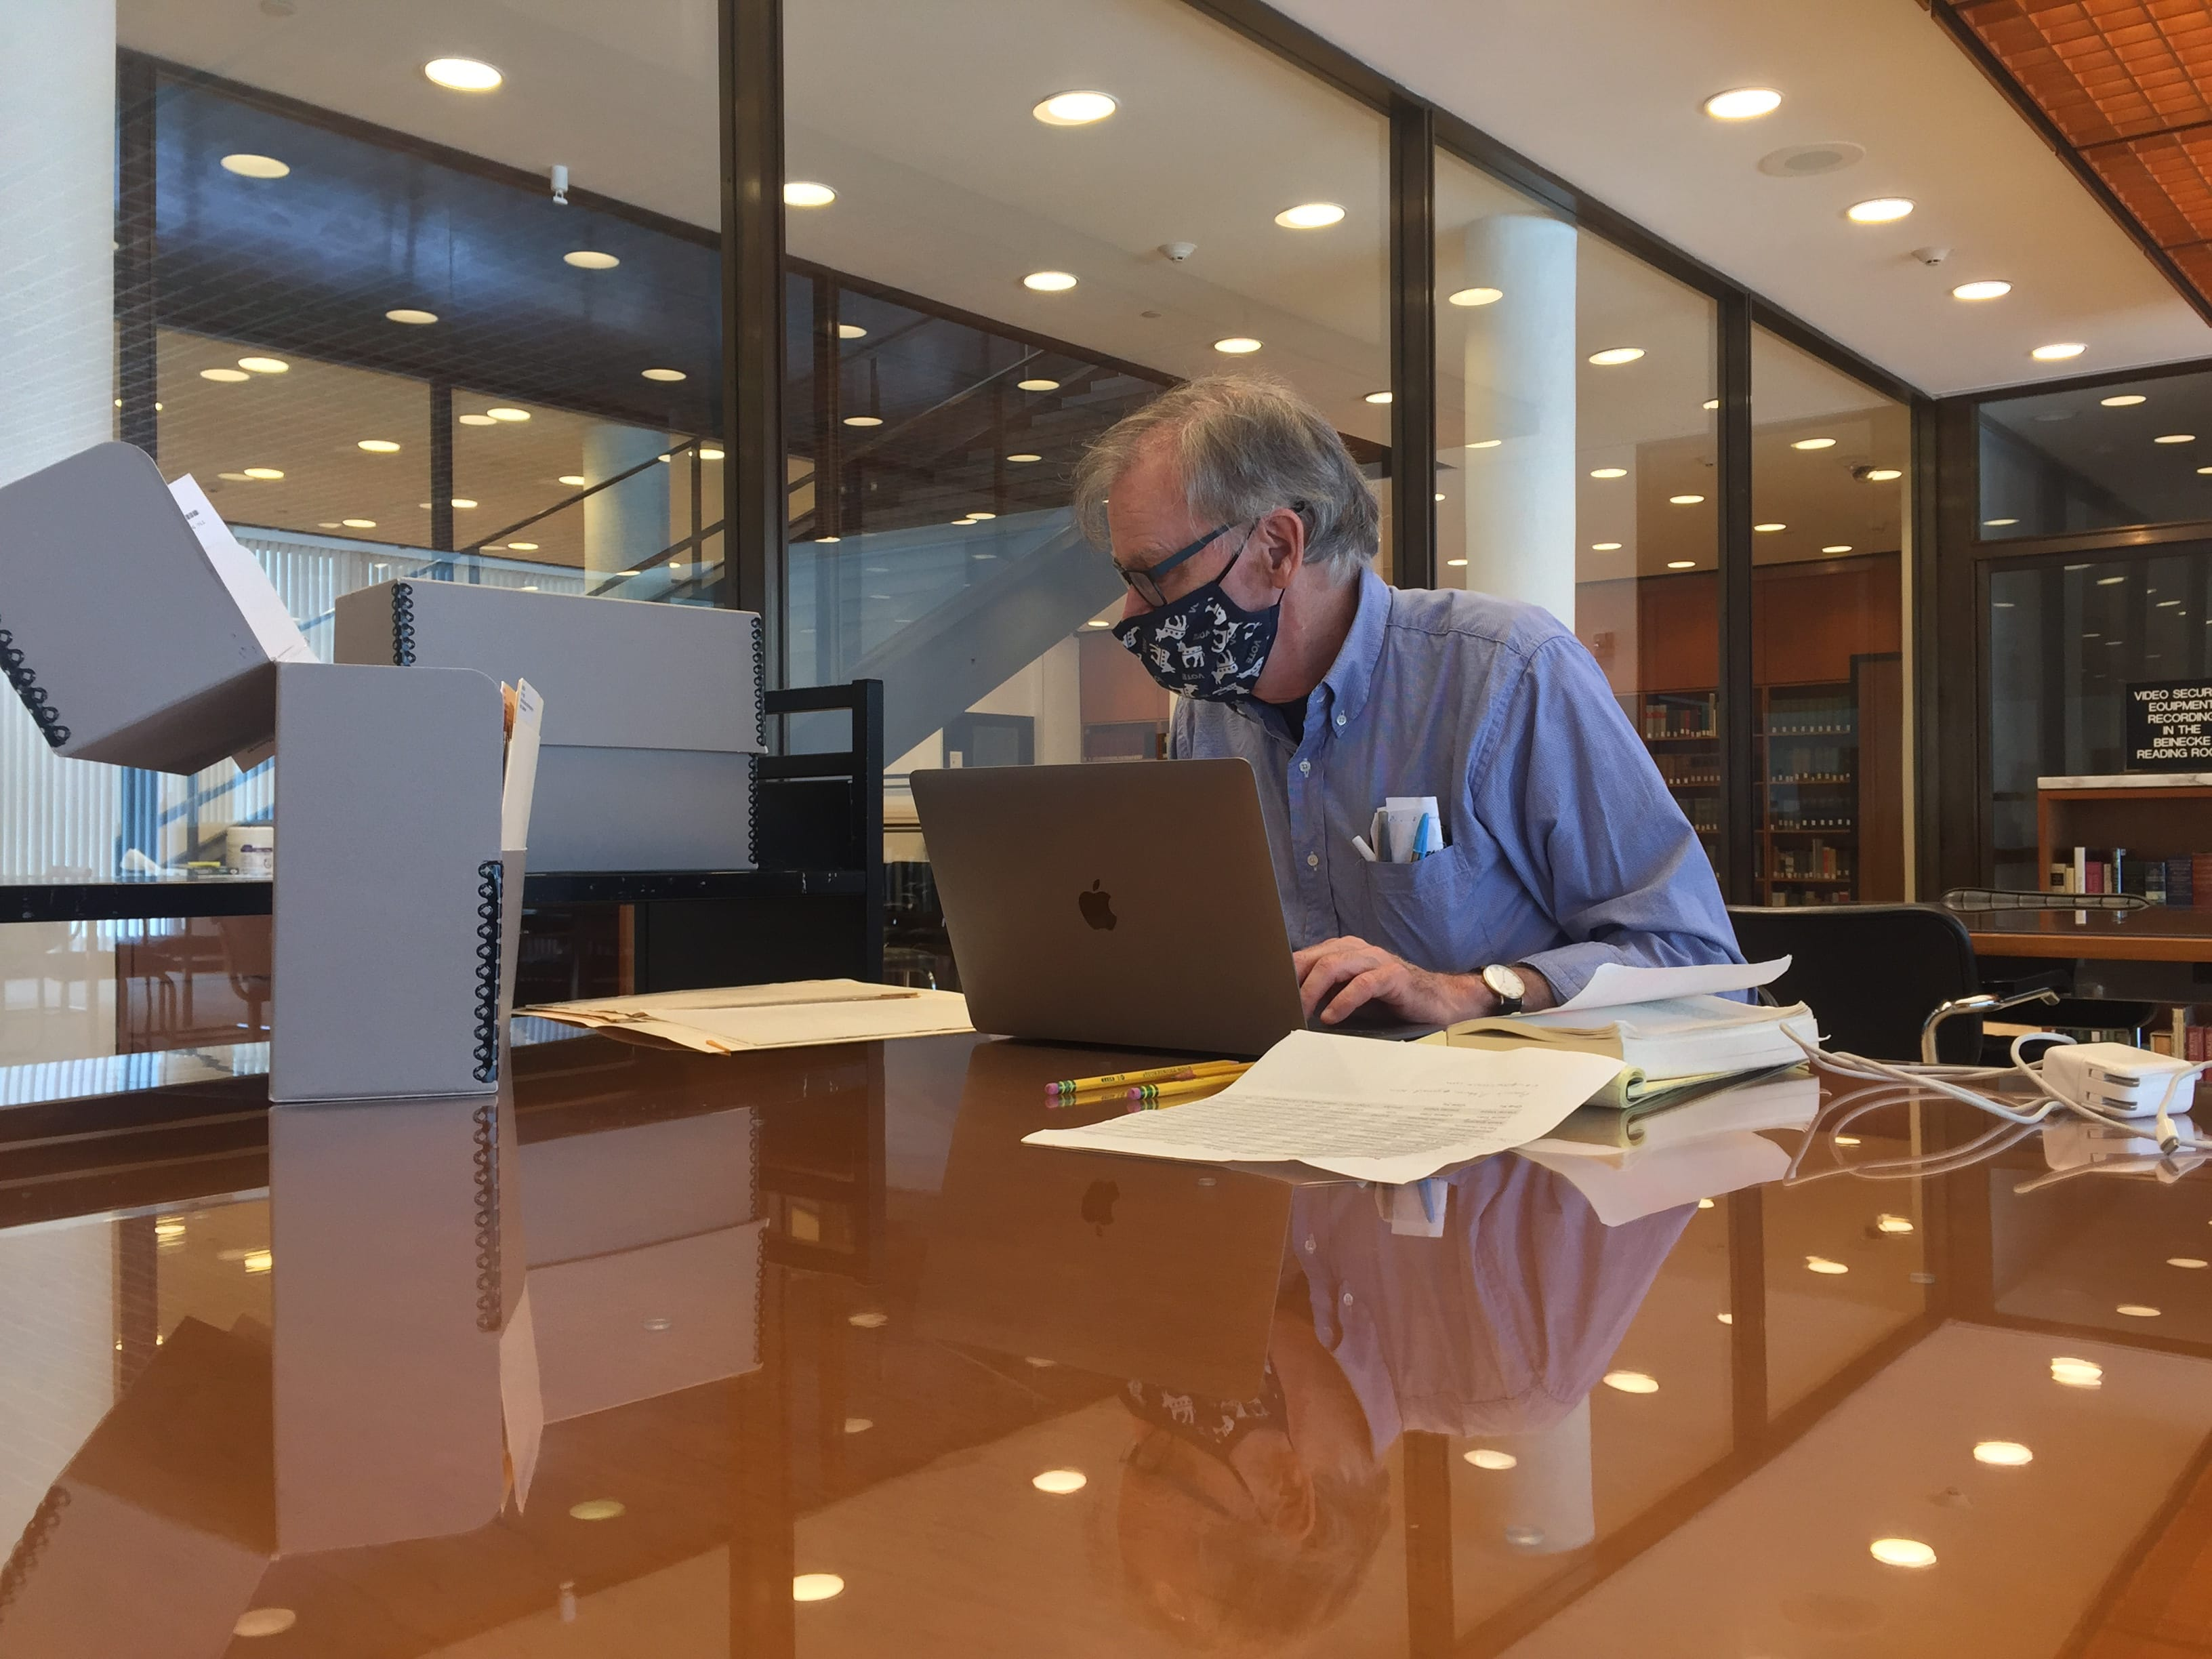 Prof. David Blight in the Beinecke reading room. Photo by Mara Lavitt